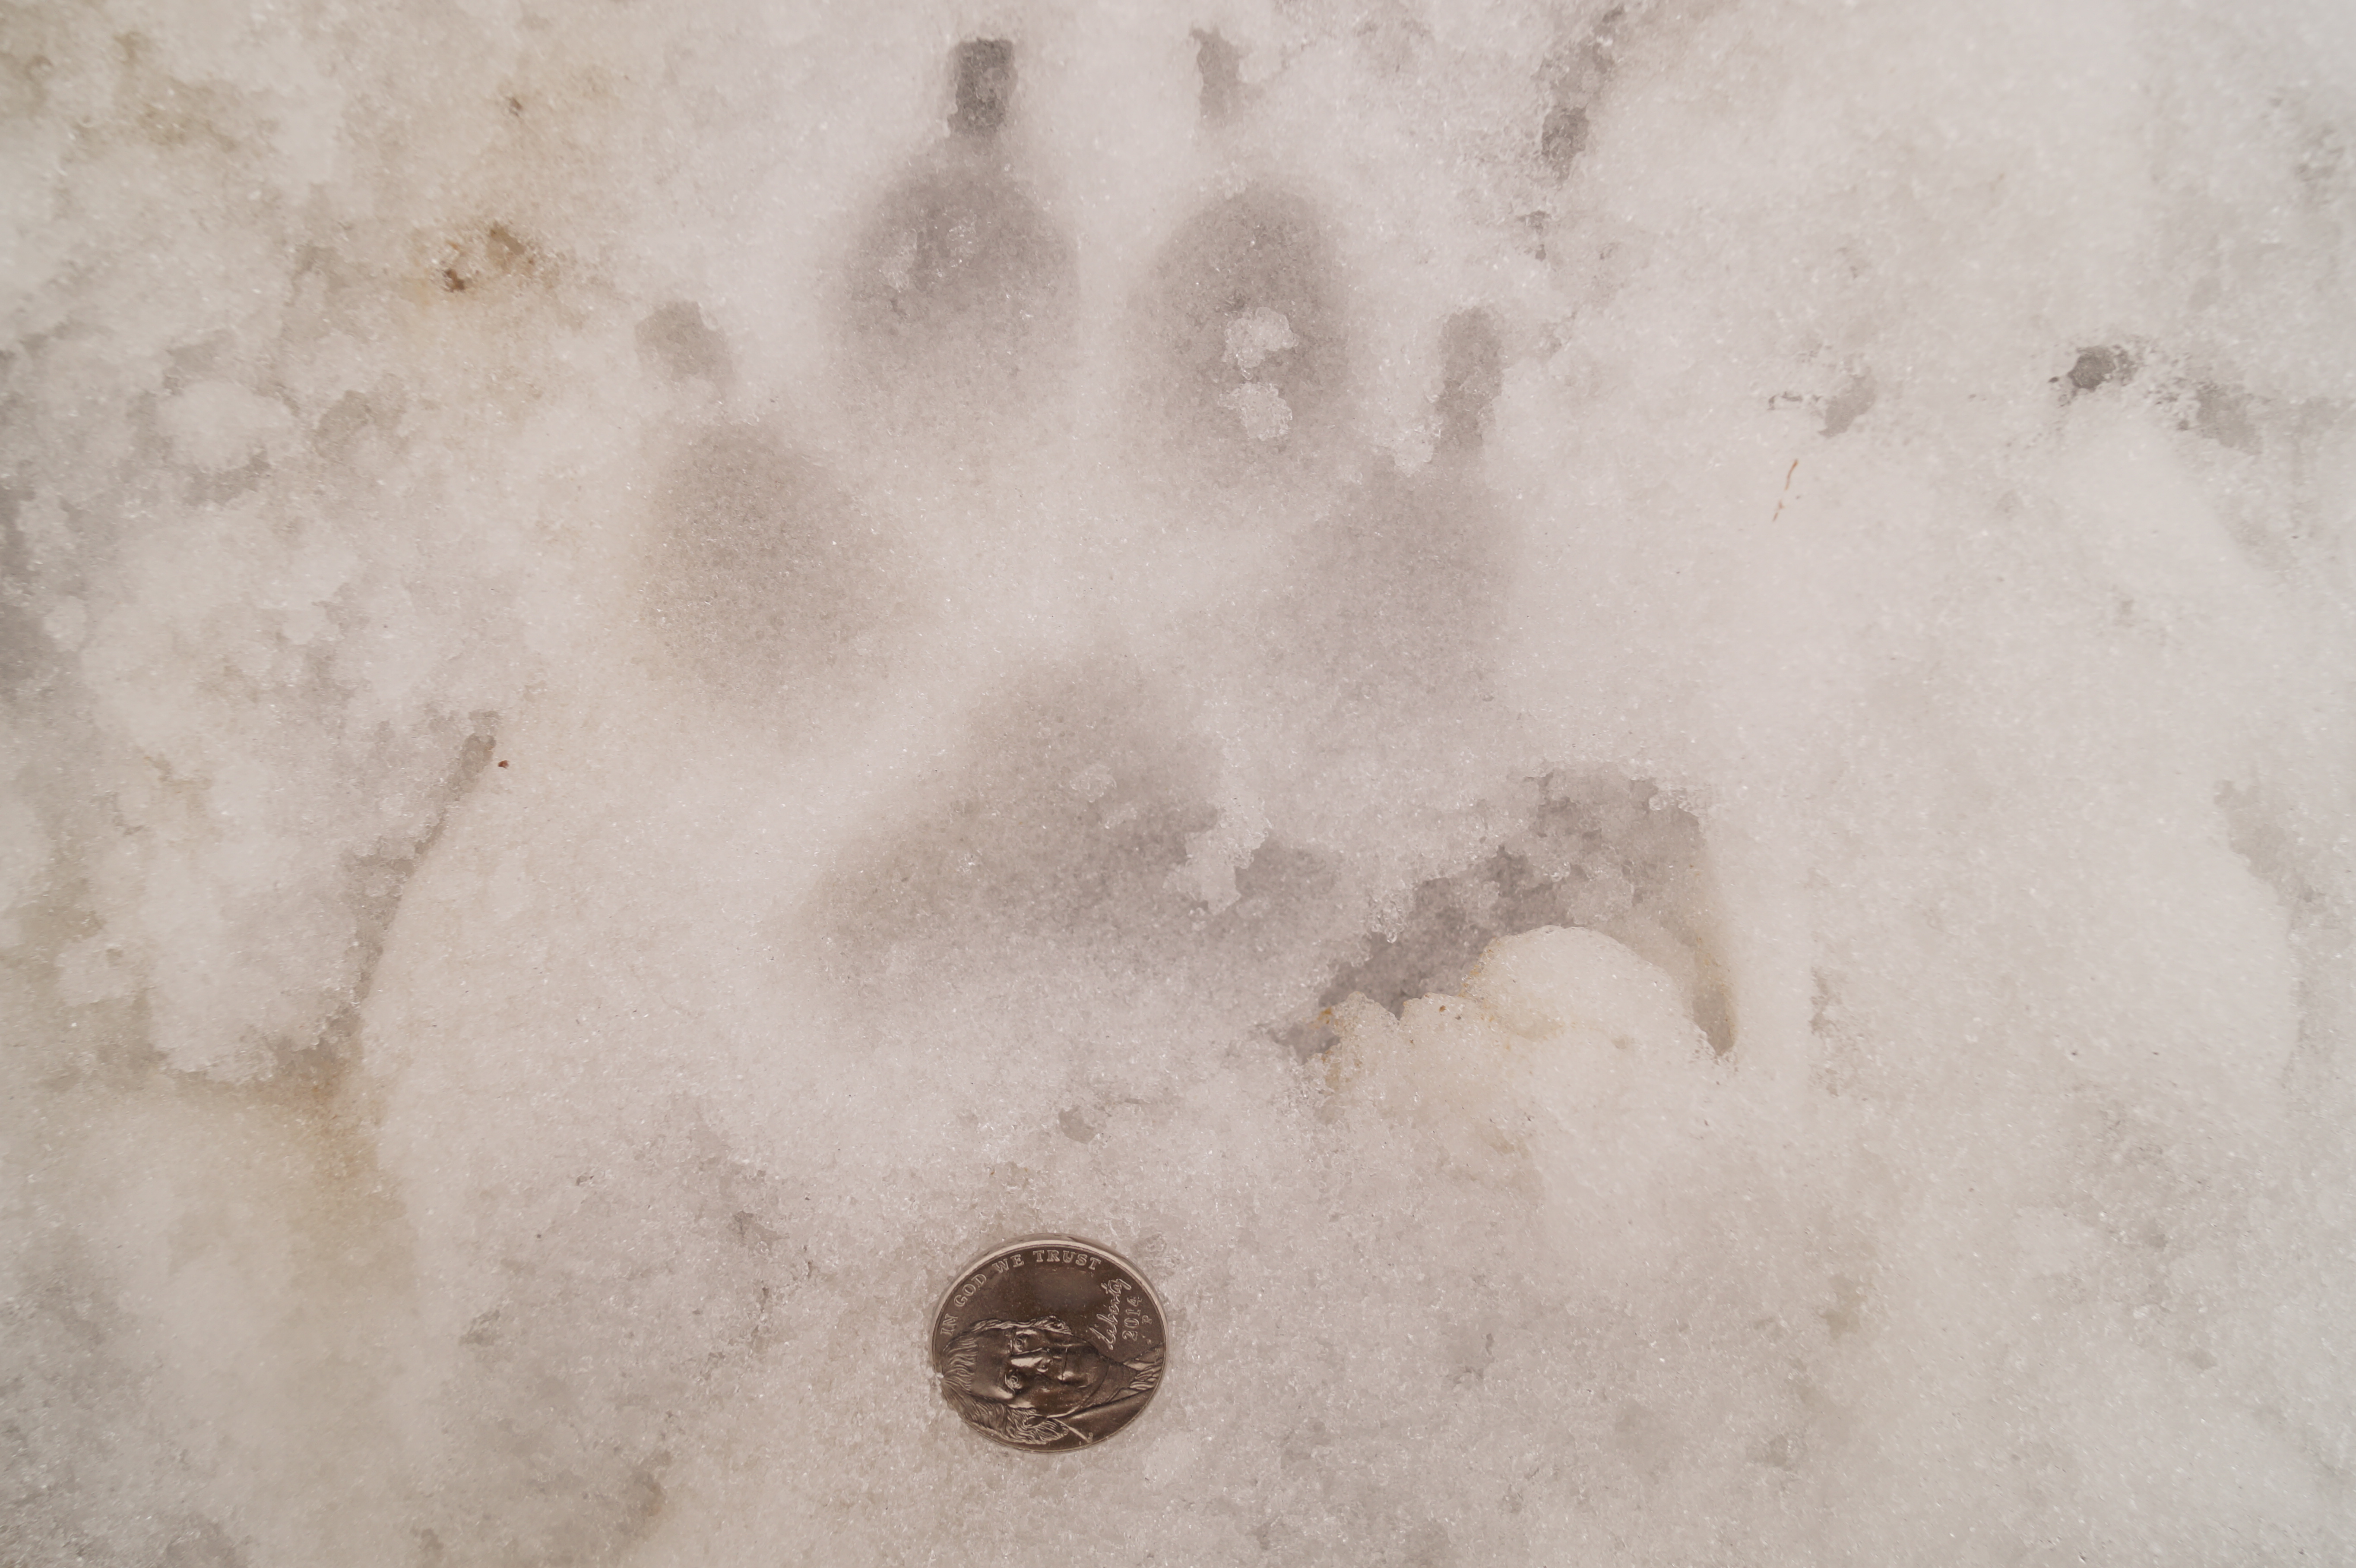 how to tell a wolf track from a dog track